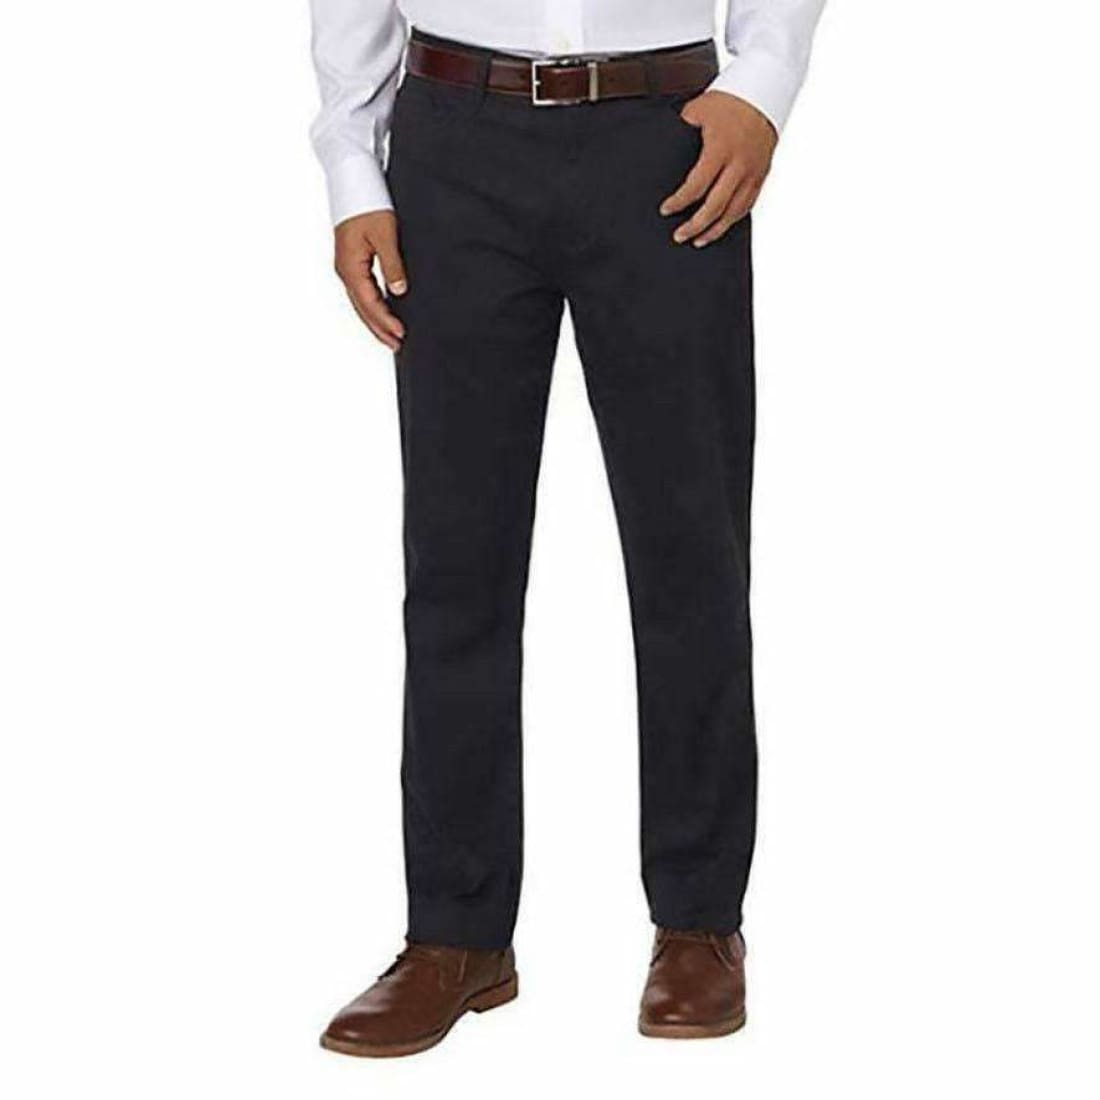 English Laundry Mens Arrogant Soft Touch Straight Leg Pant 30X32 Forged Iron Pants